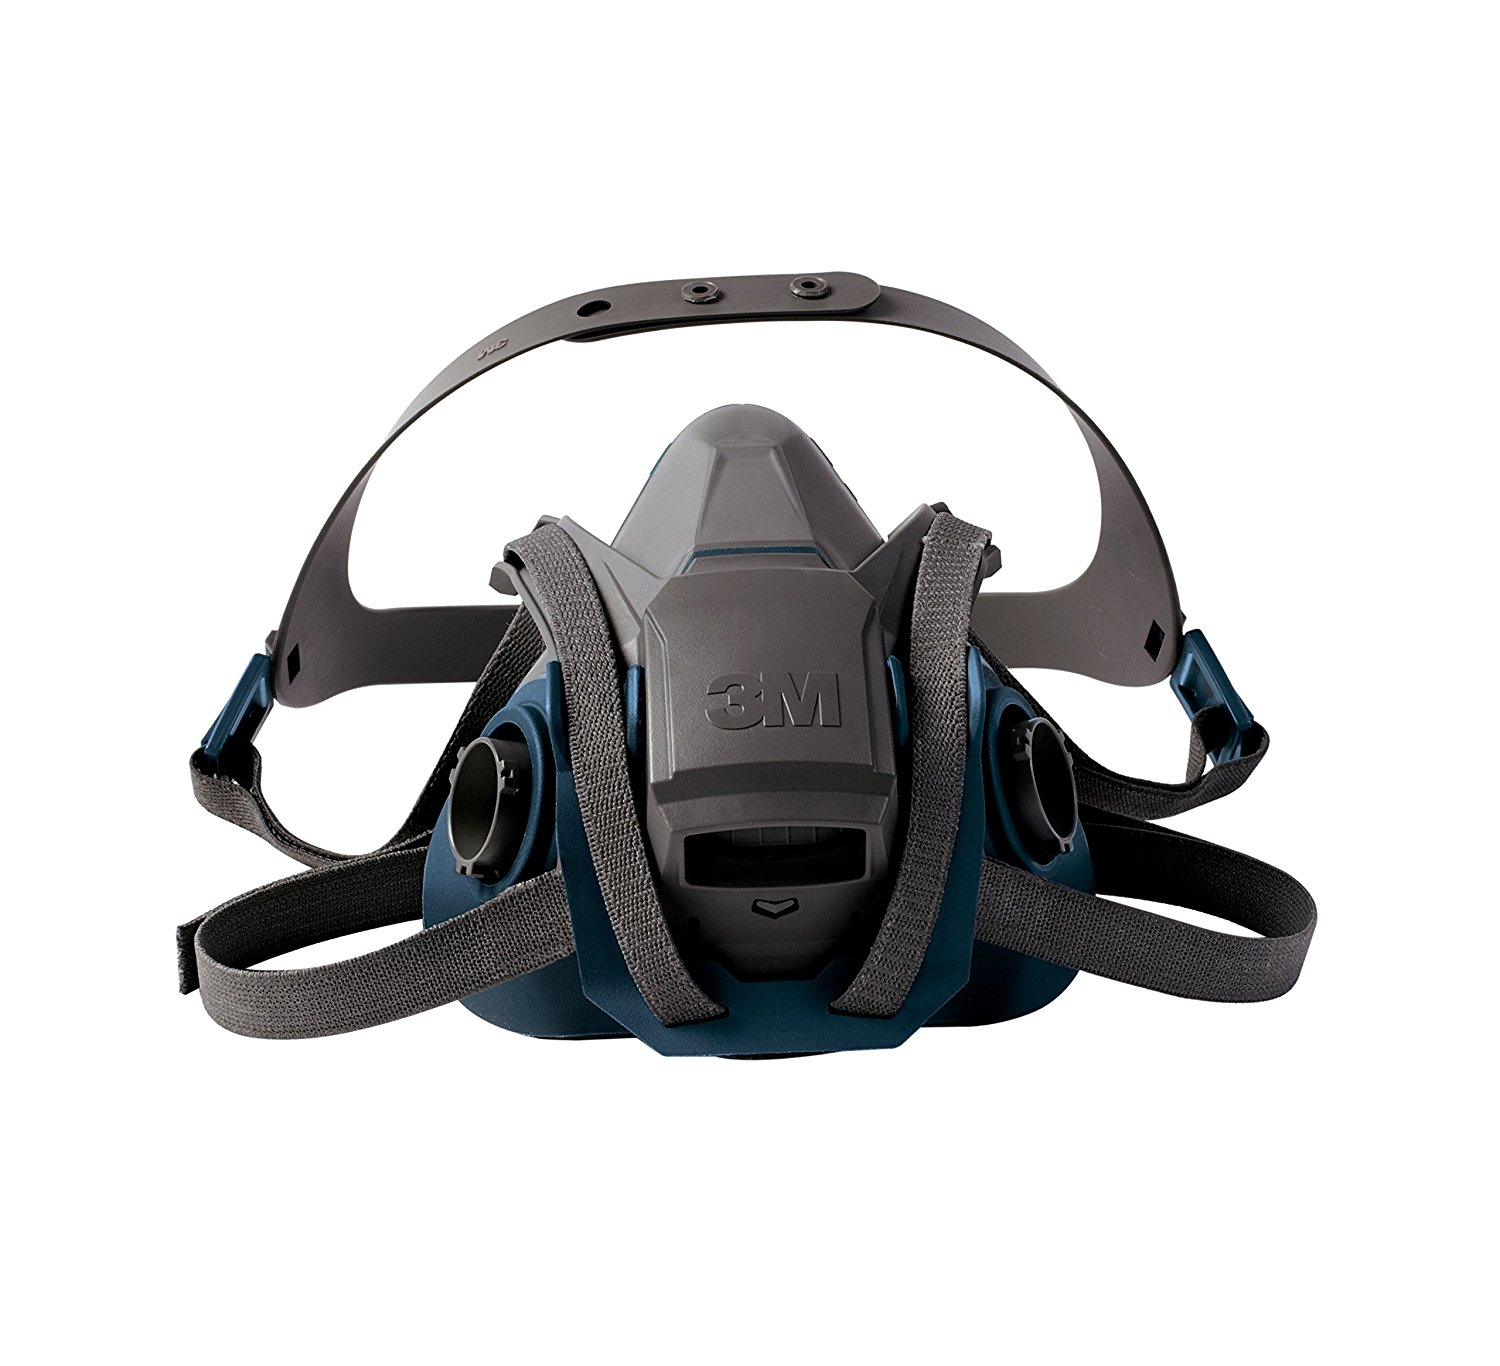 3m dust mask for woodworking